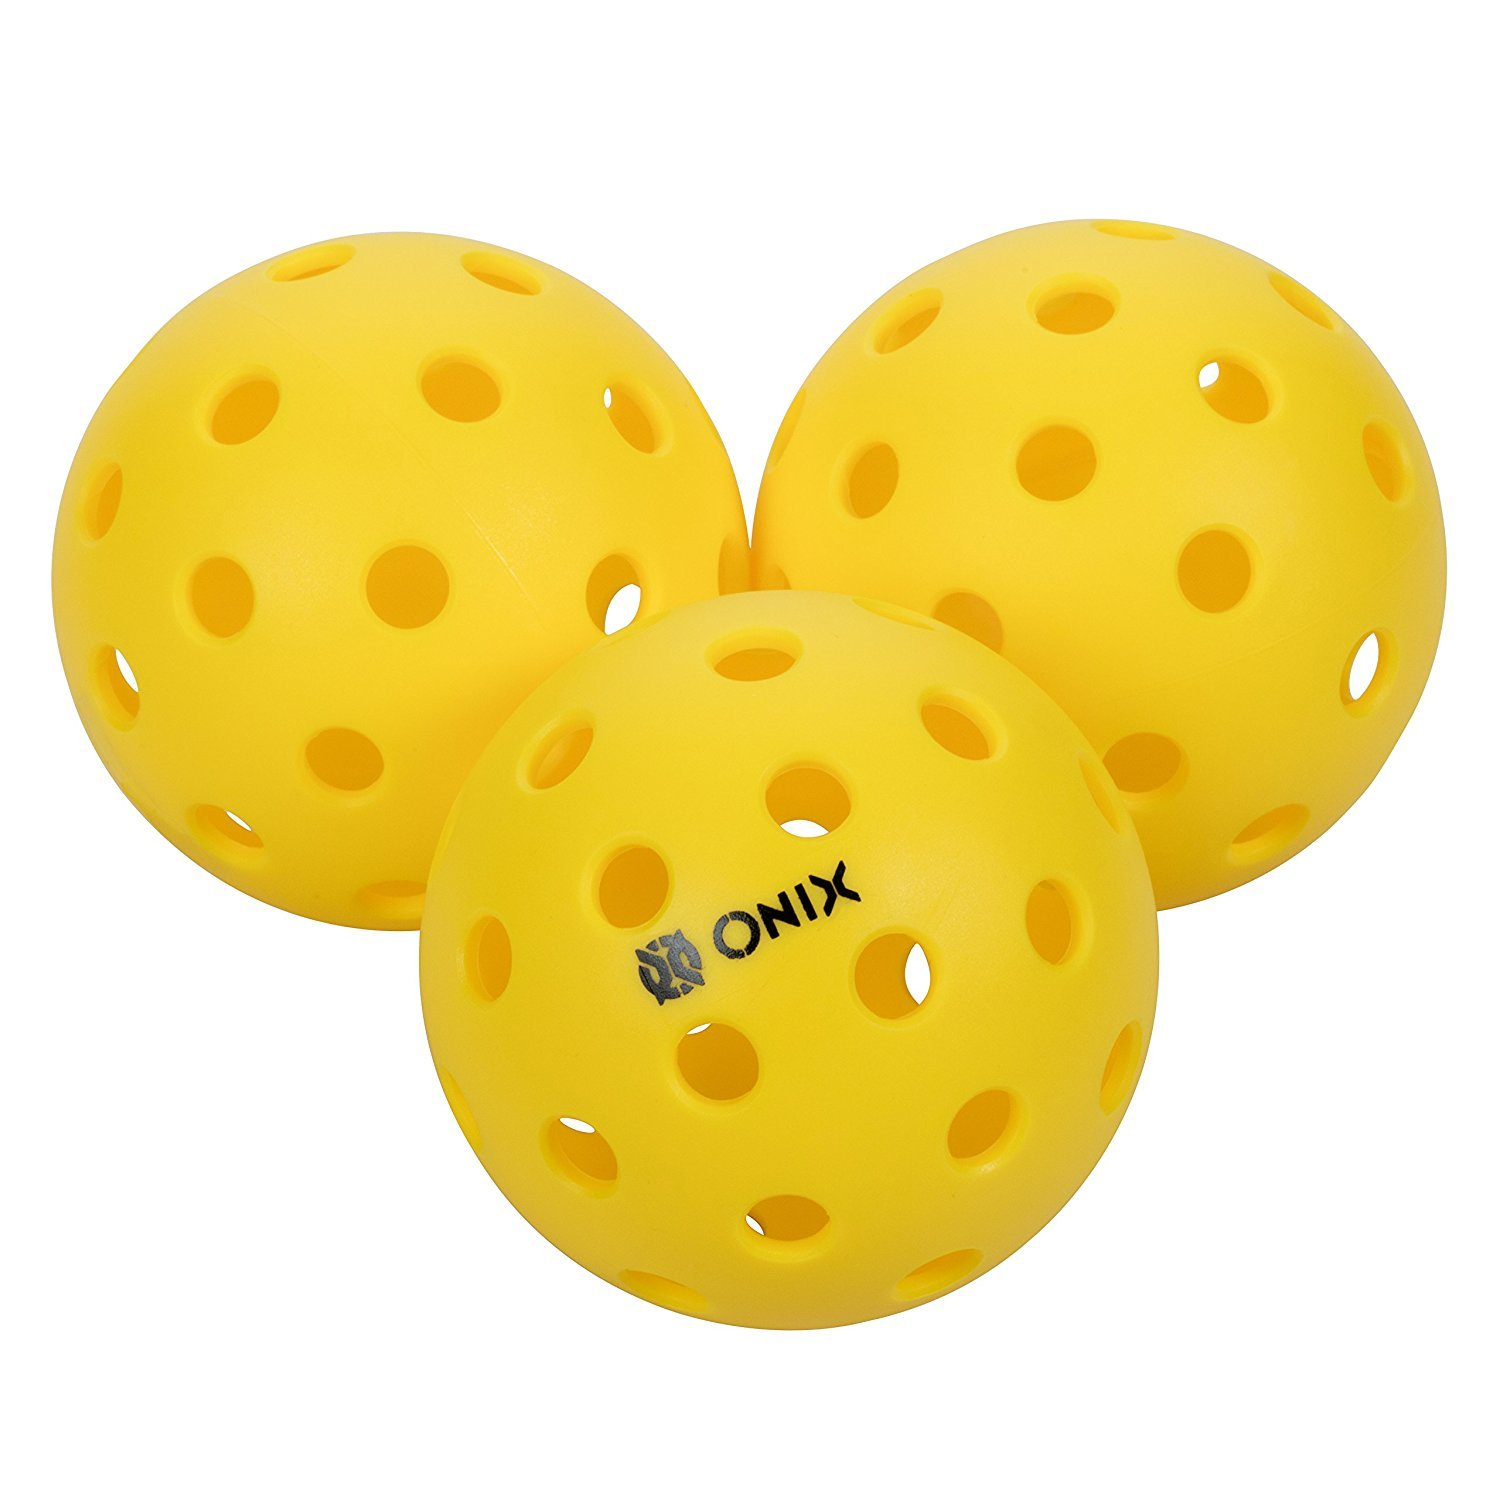 Onix Pure 2 Outdoor Pickleball Balls (8-Pack), Yellow, 8-Pack by Onix